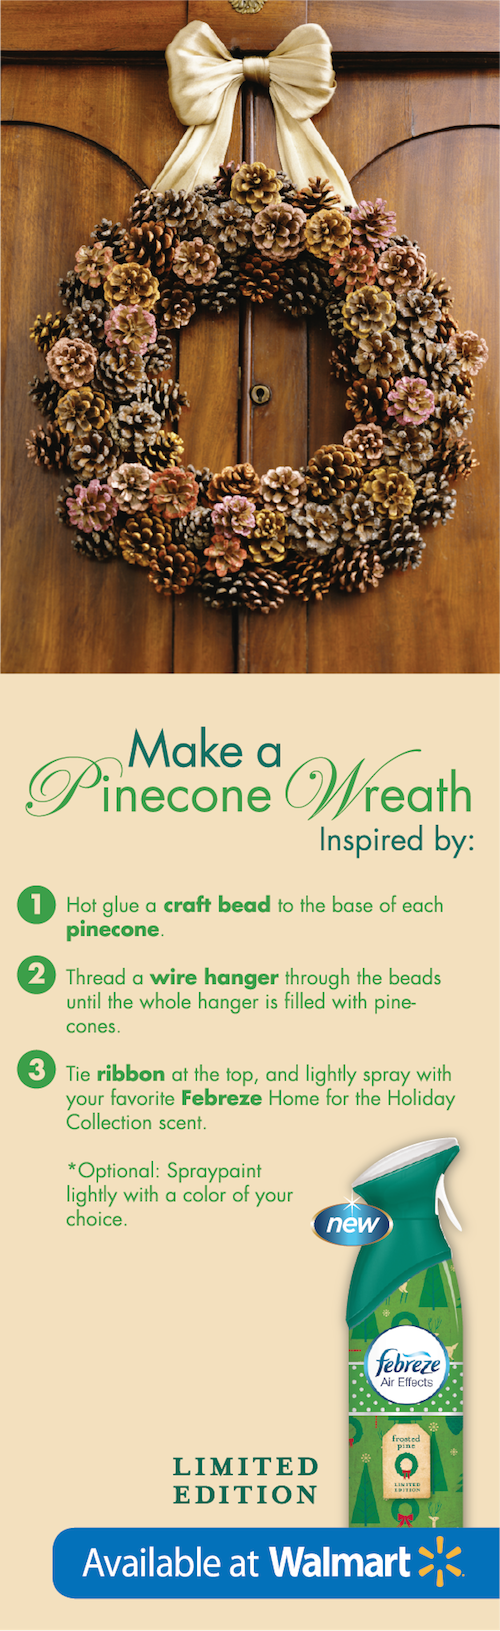 This #DIY pinecone wreath is a perfect greeting for holiday guests #FebrezeHoliday